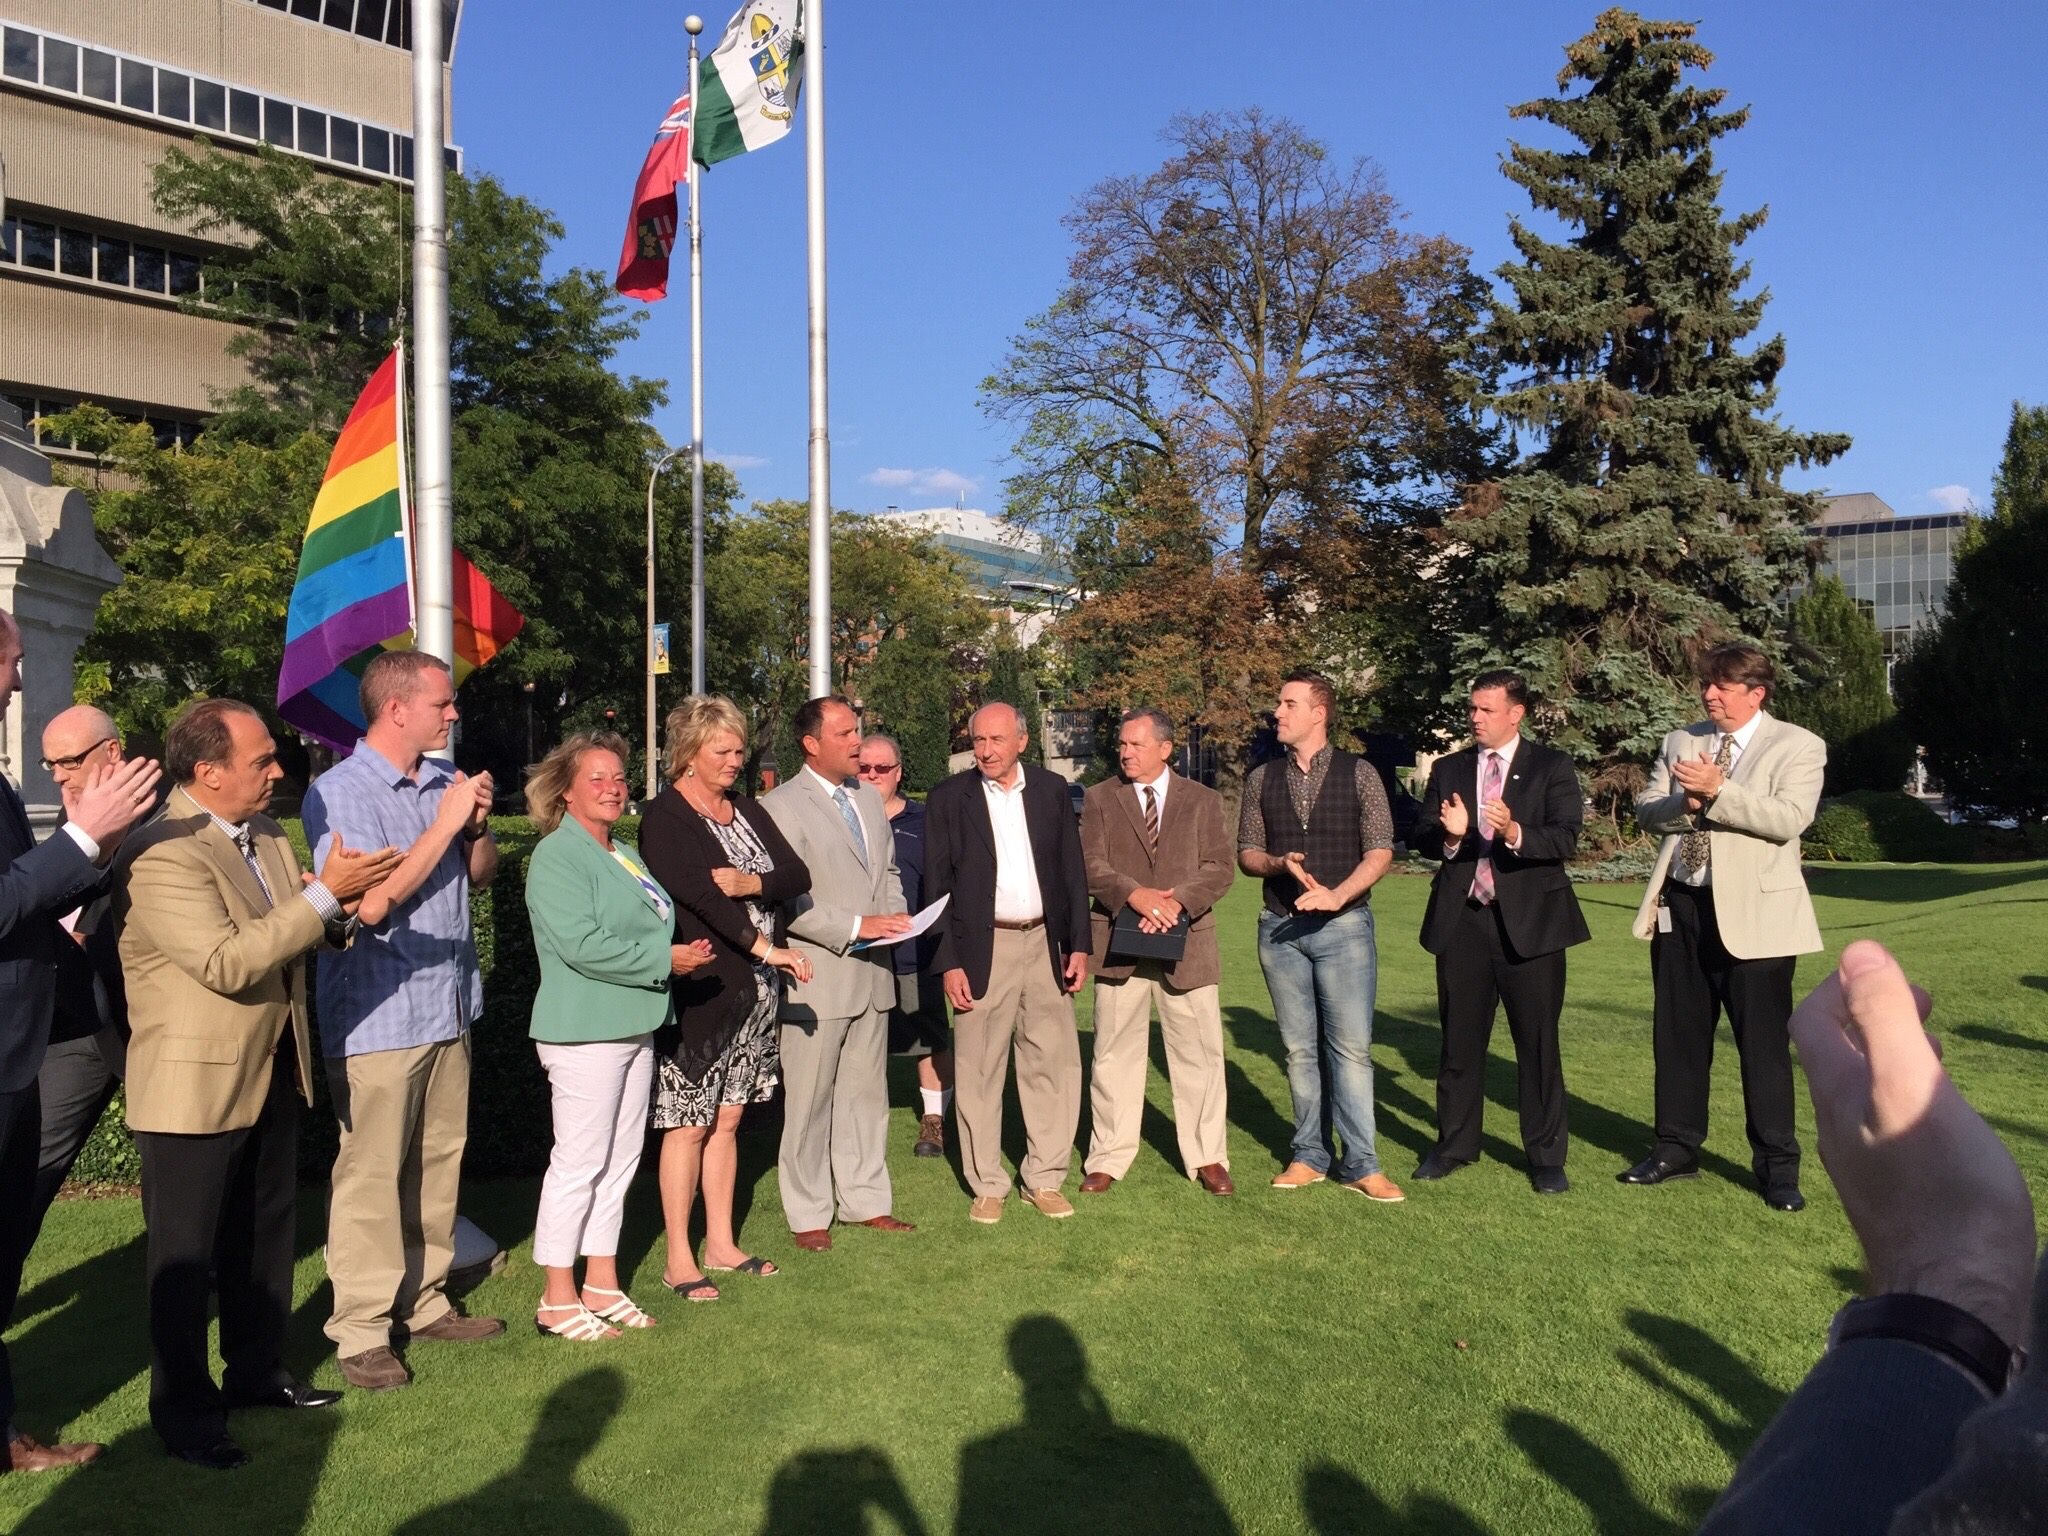 Pride flag showing our City and Council's support of the LGBTQ community.